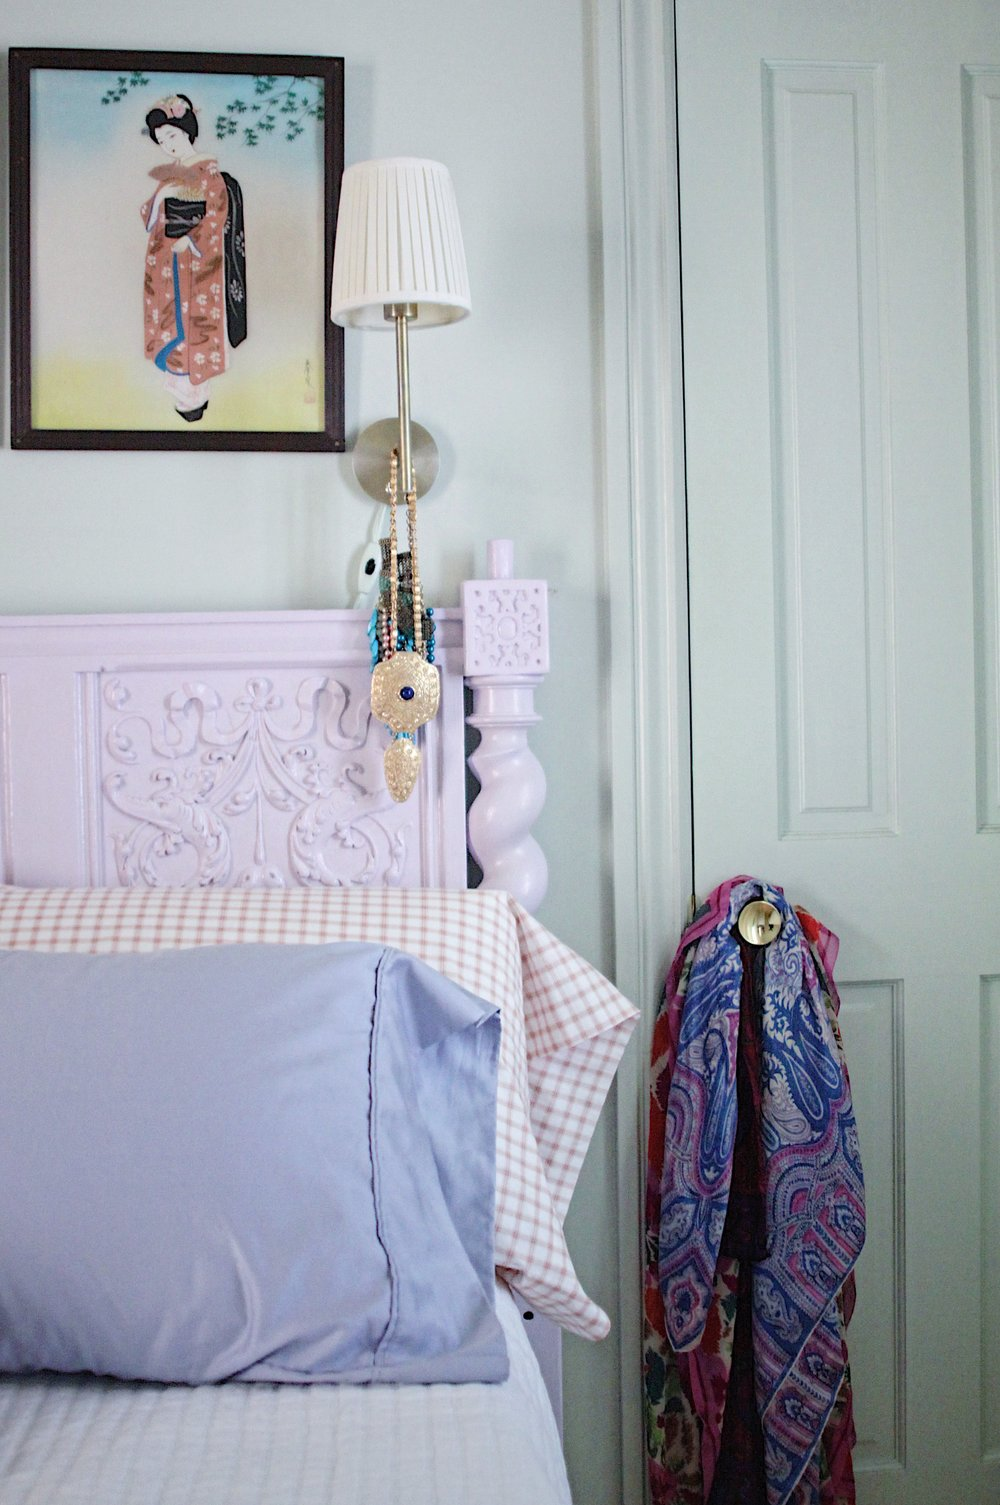 katie_gavigan_bedroom_06.jpg